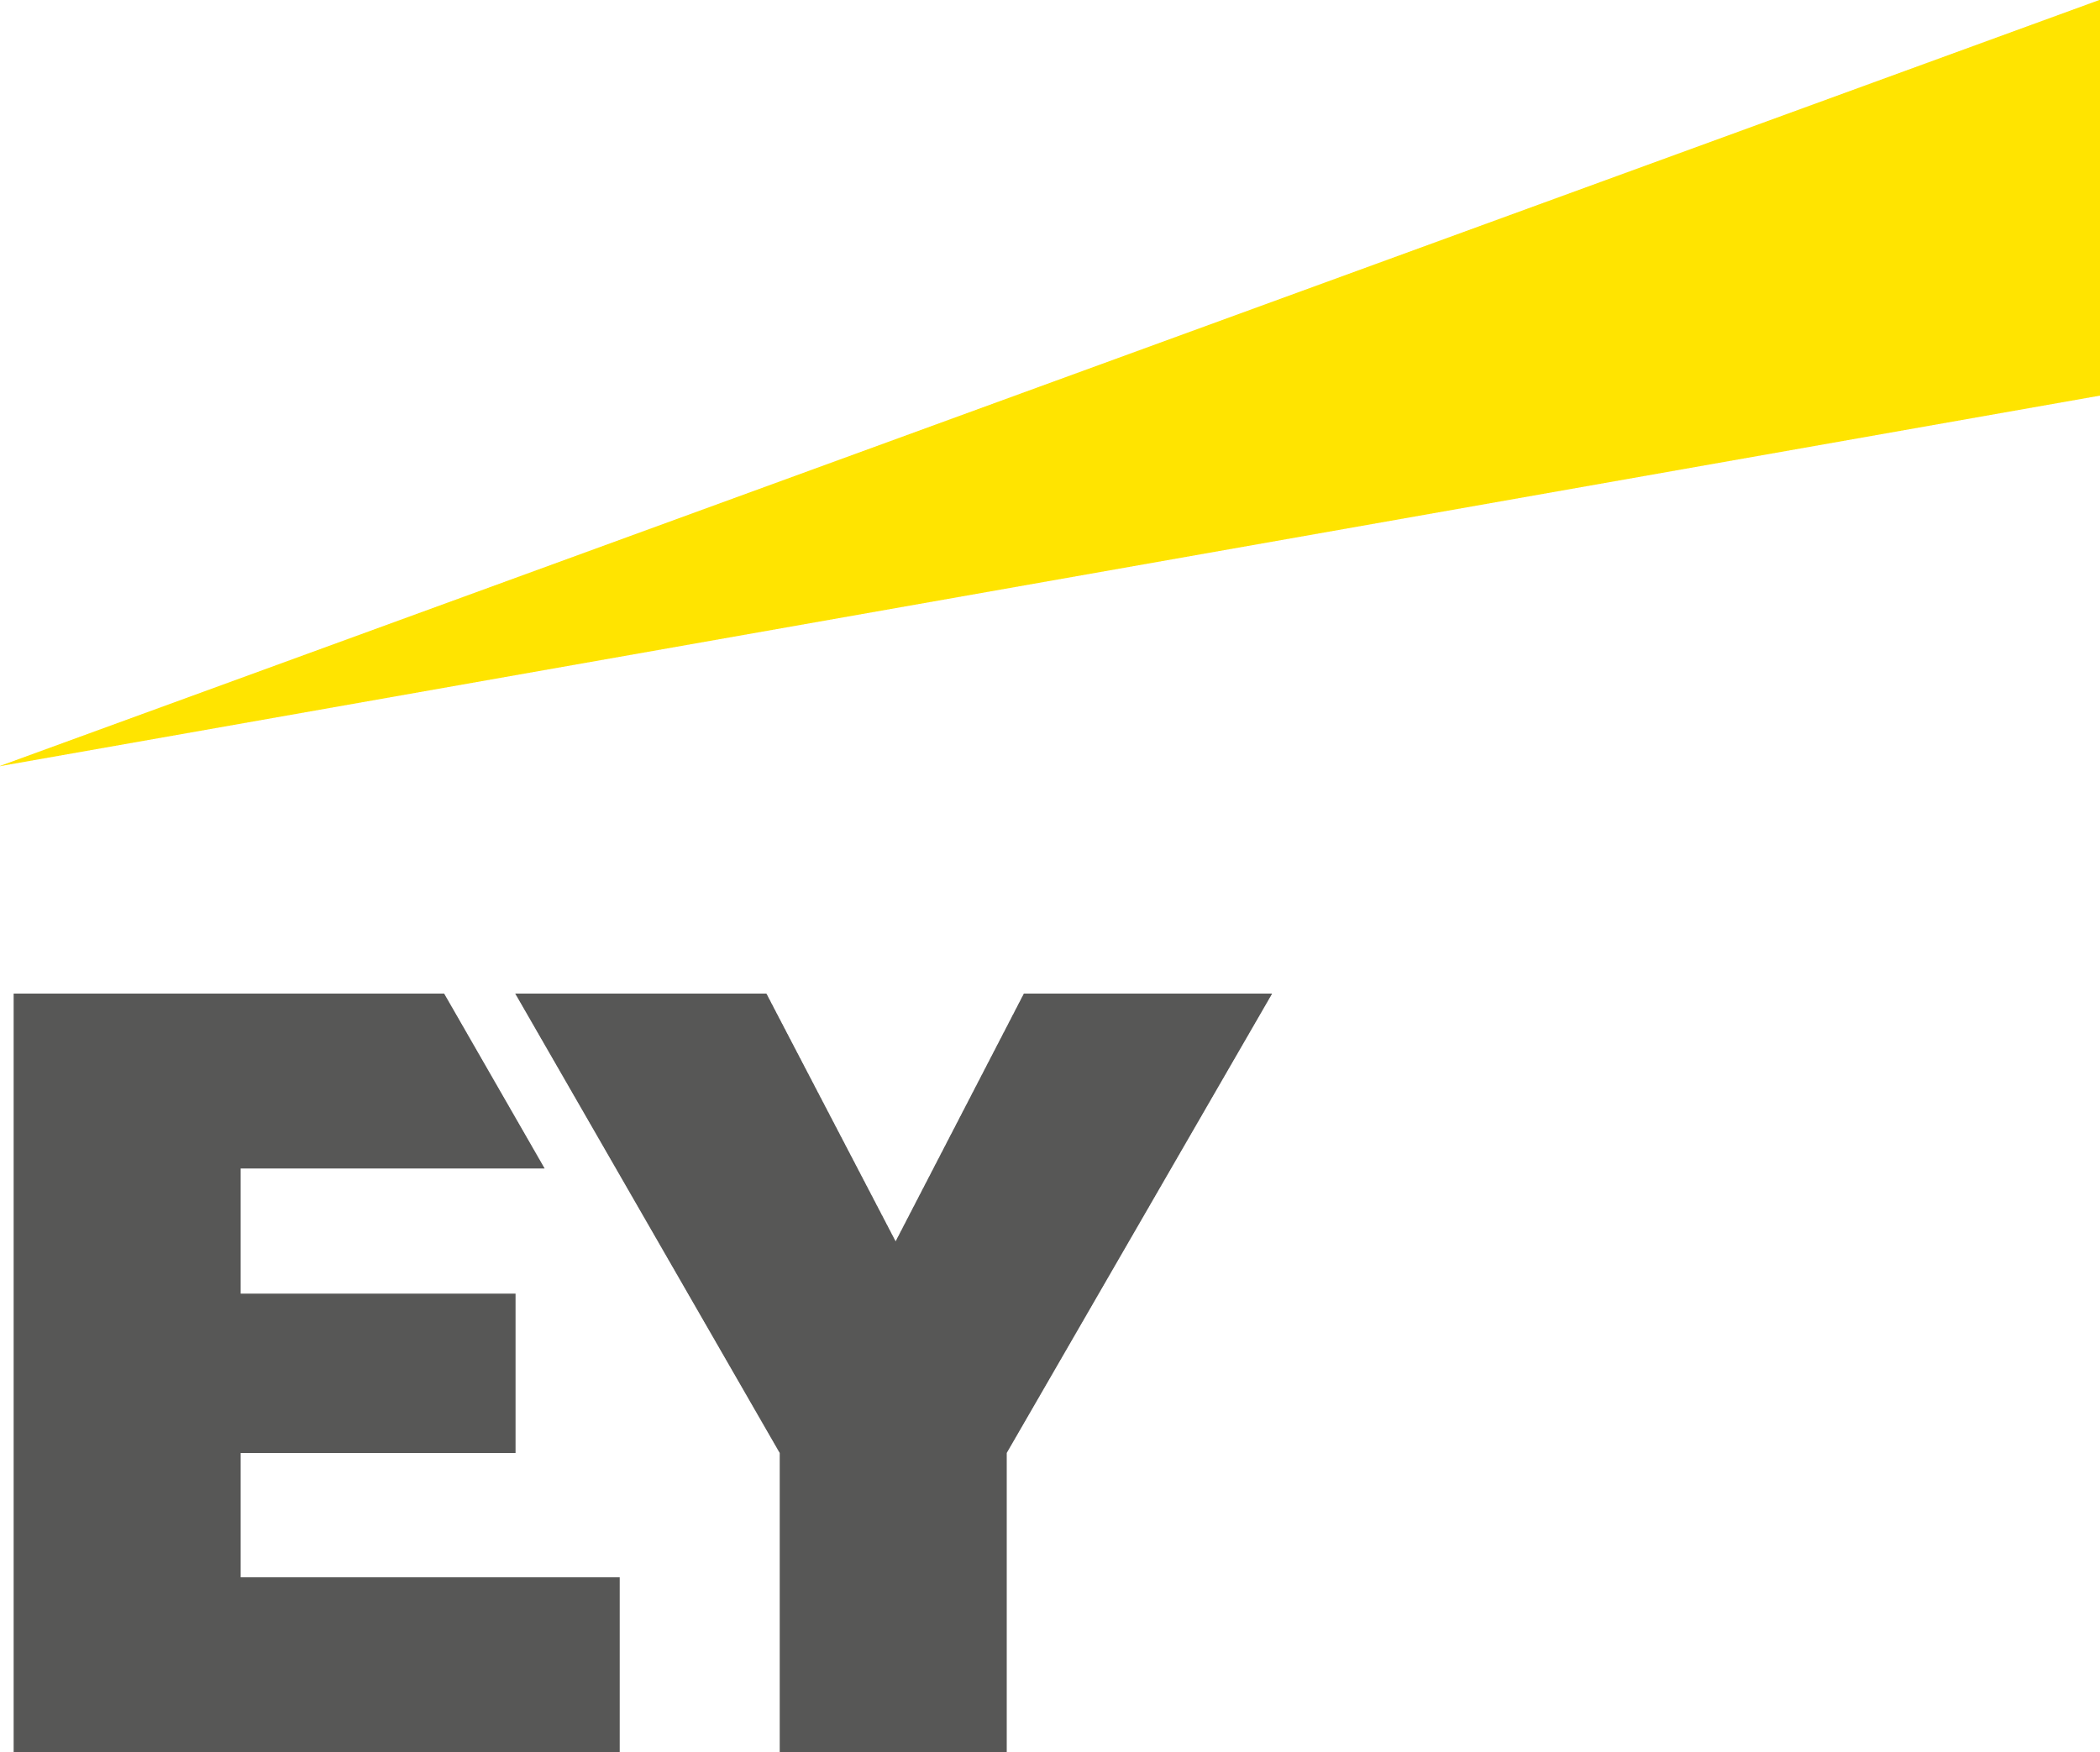 ernst-young-ey-01.png